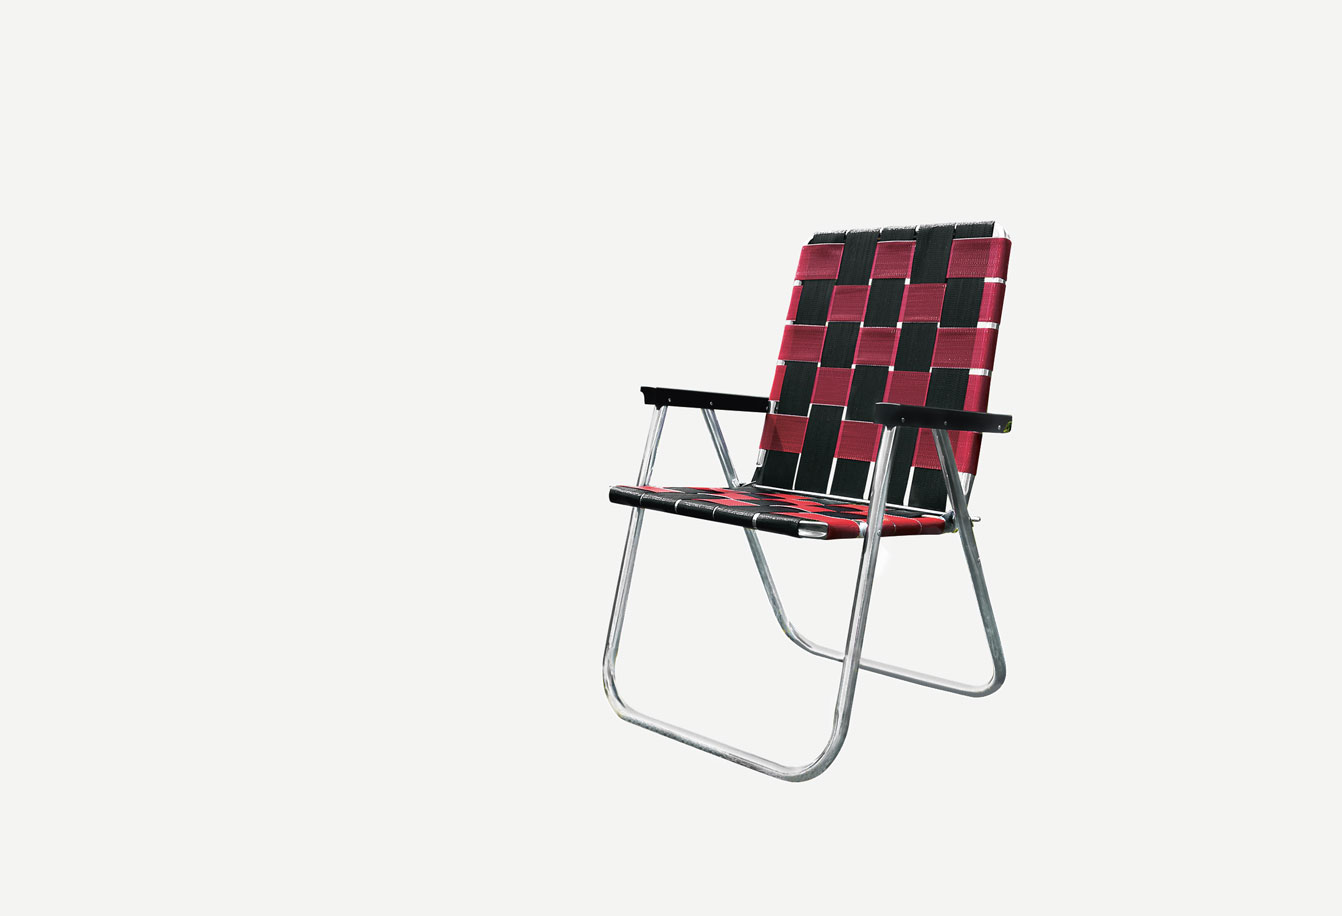 American Lawn Chair 1940s, Designer unknown - as featured in Chair: 500 Designs that Matter